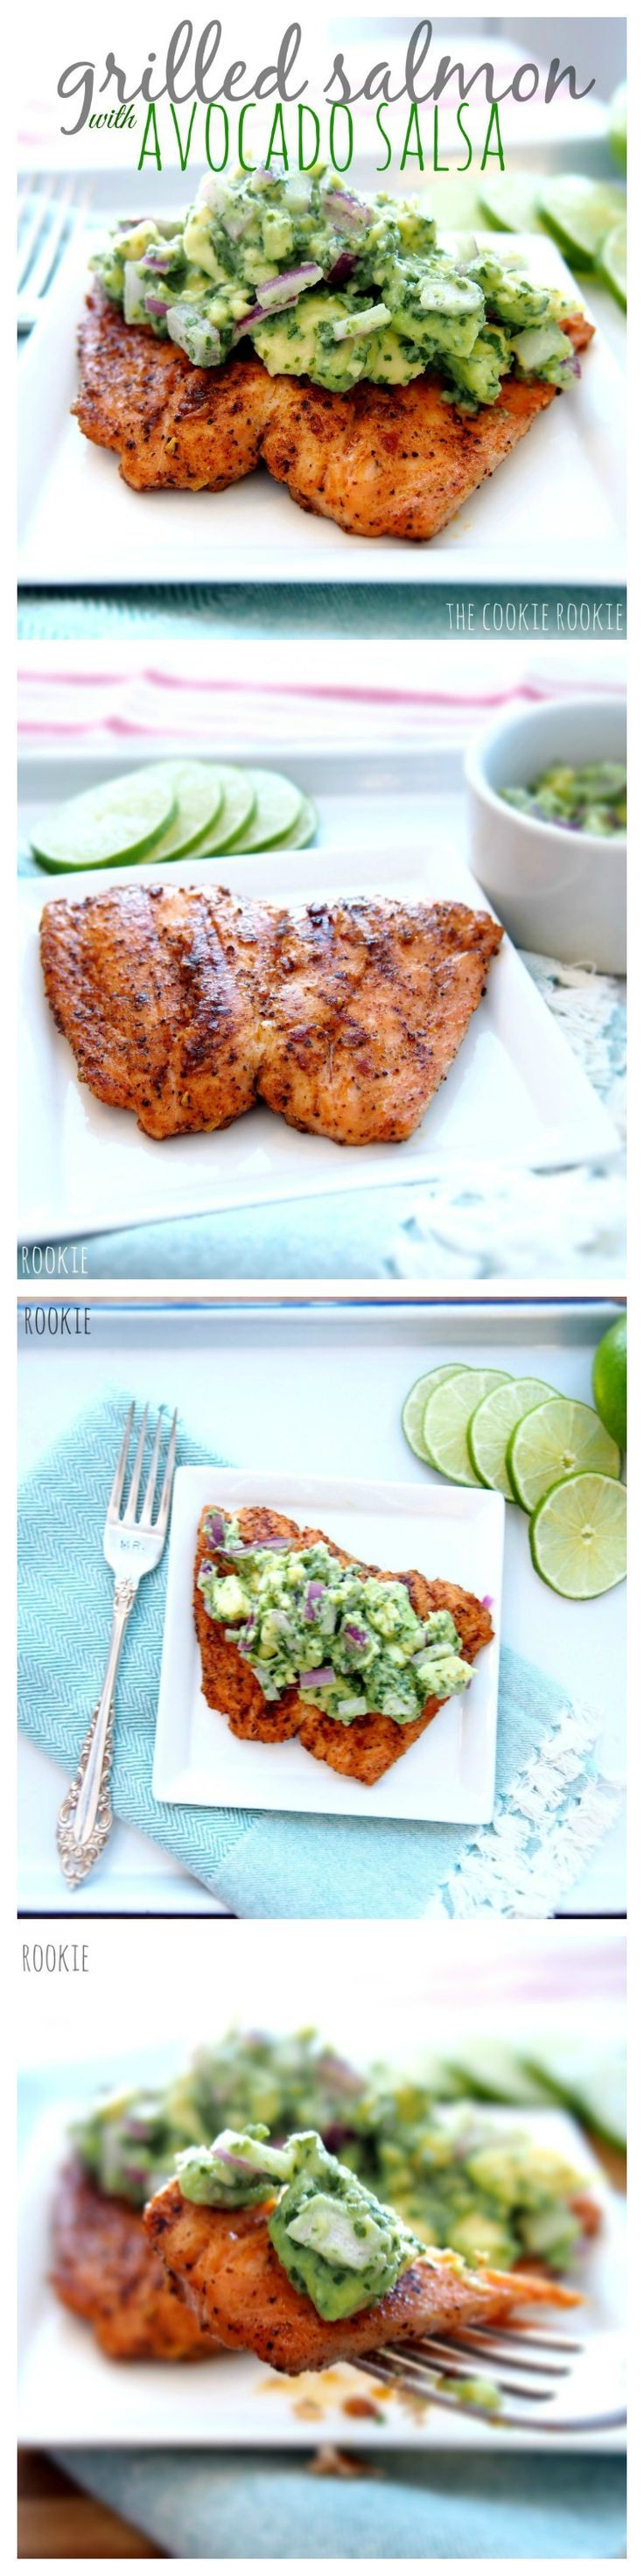 Grilled Salmon with Avocado Salsa. Delicious, healthy and easy. Perfect for the warmer weather! {The Cookie Rookie} #food #summer Foods Grilling Recipes #recipe